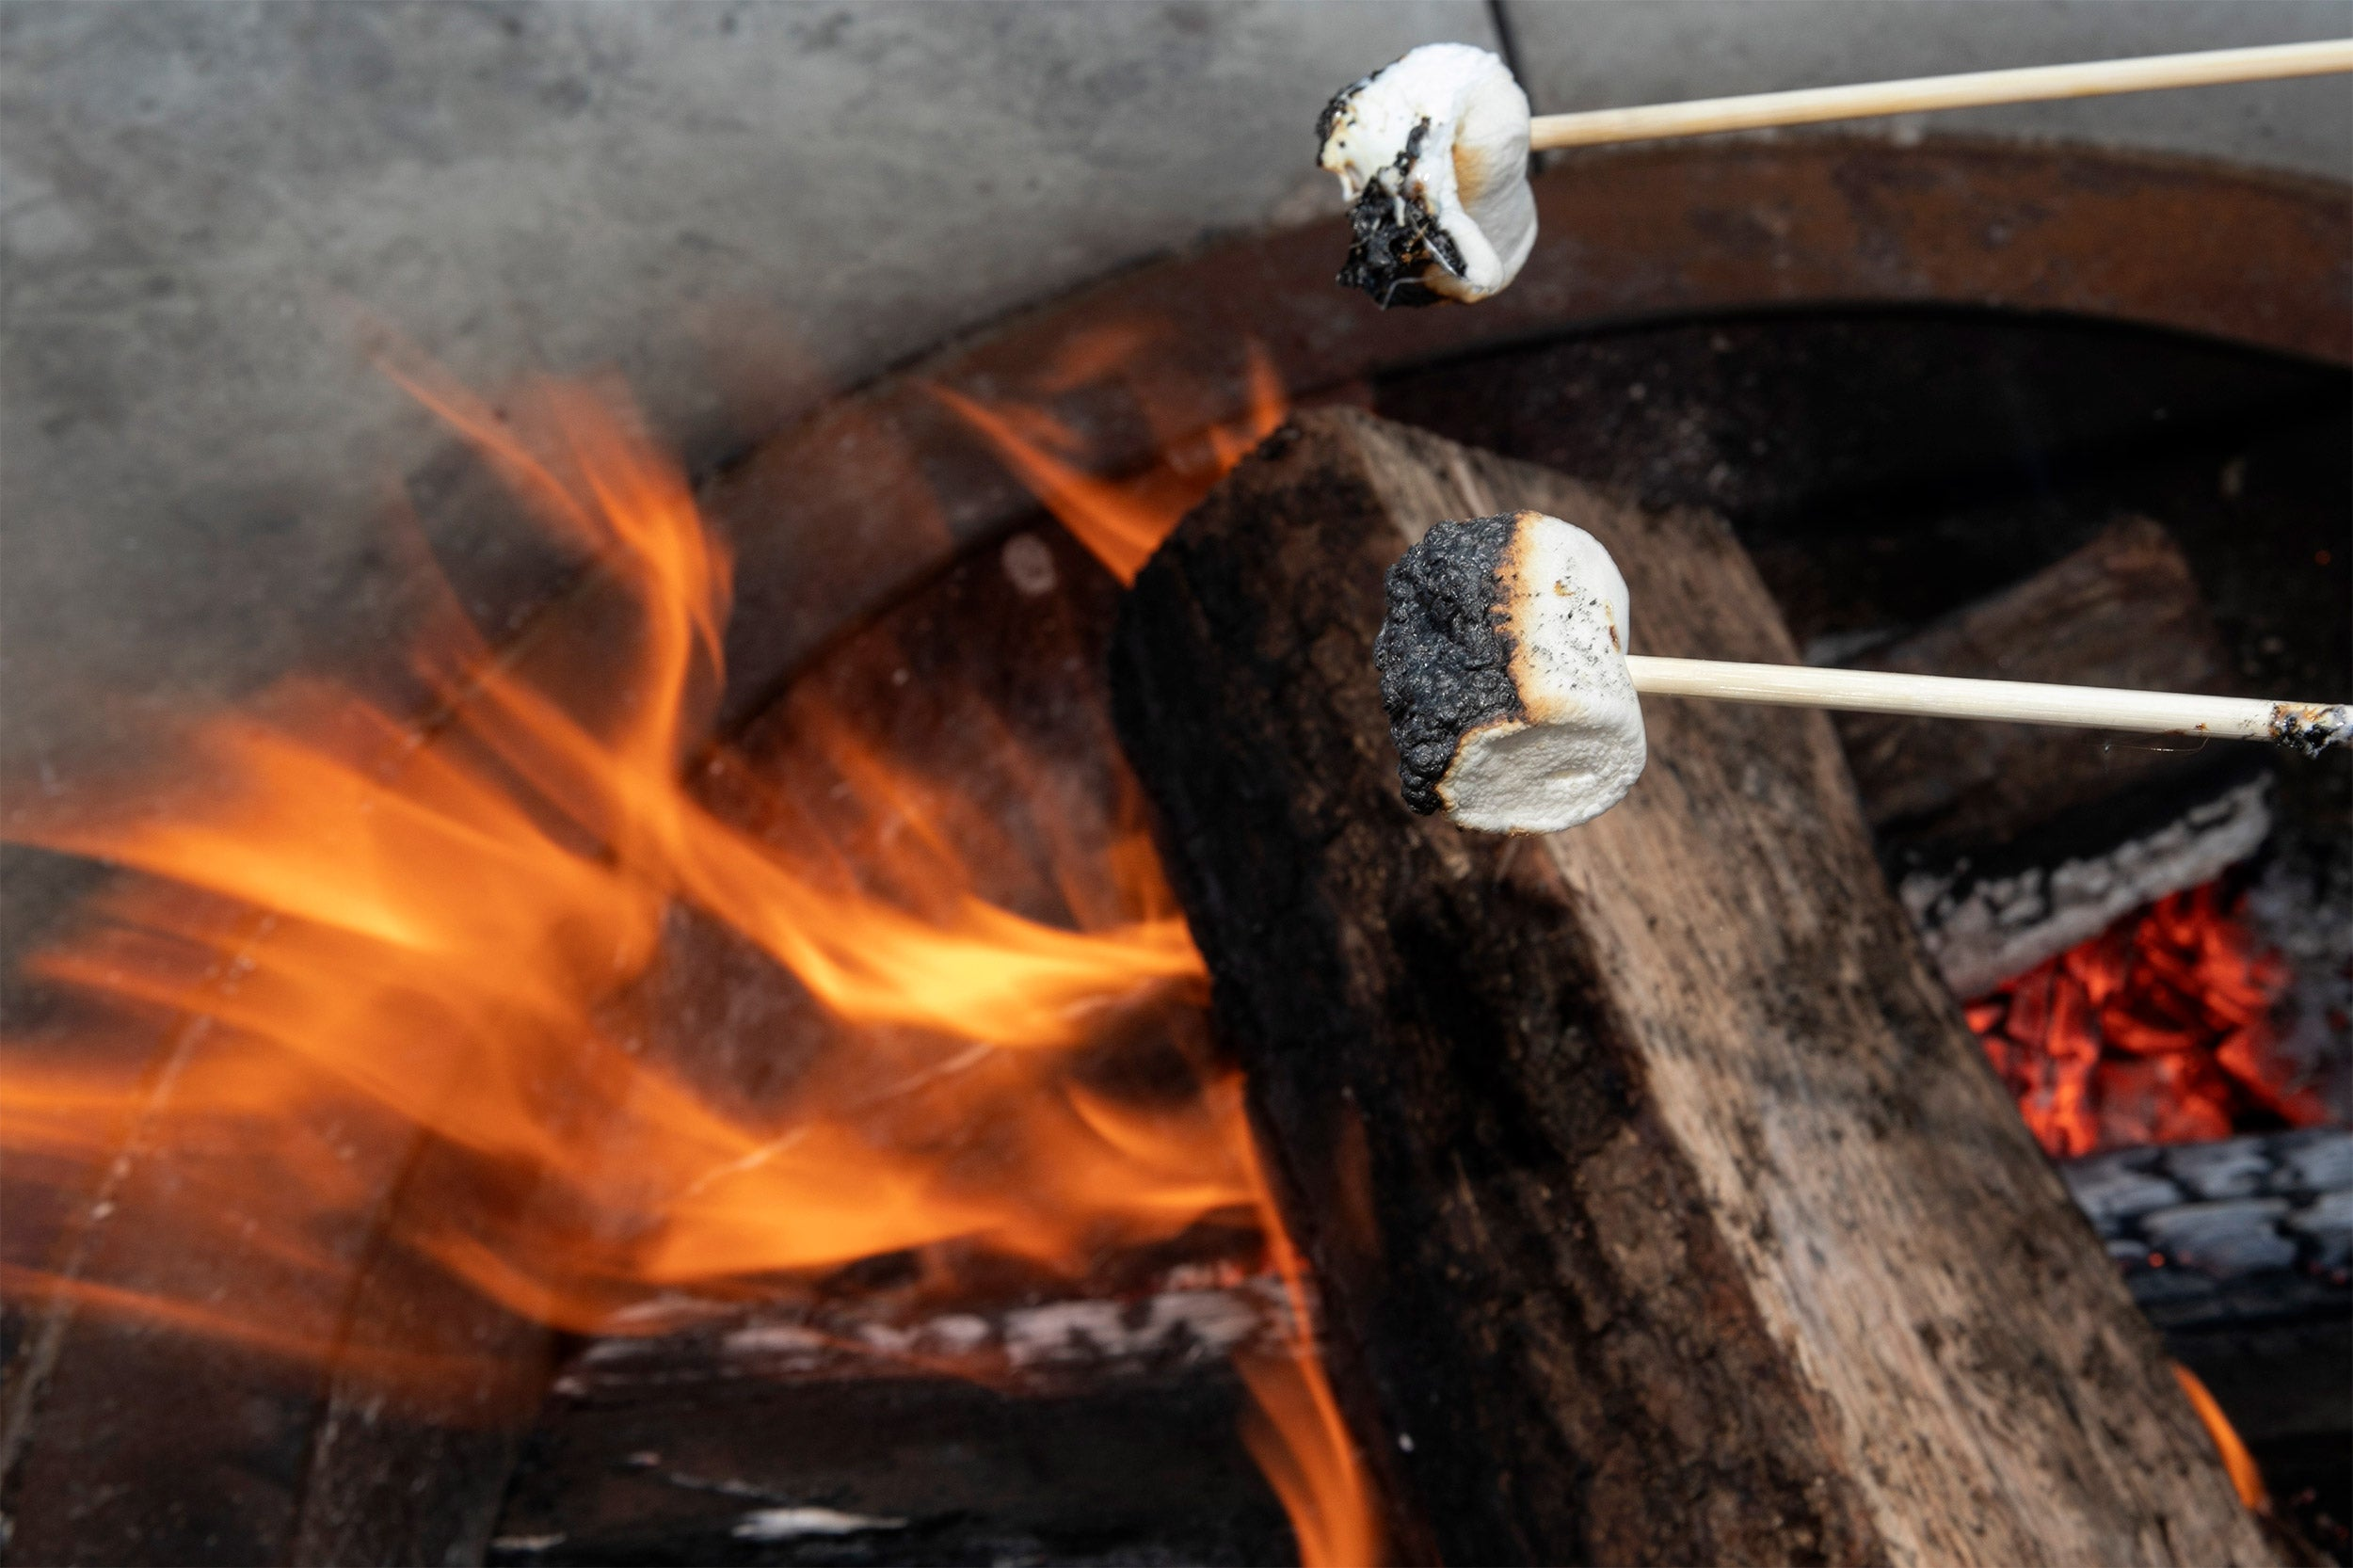 Marshmallows roasting on a fire